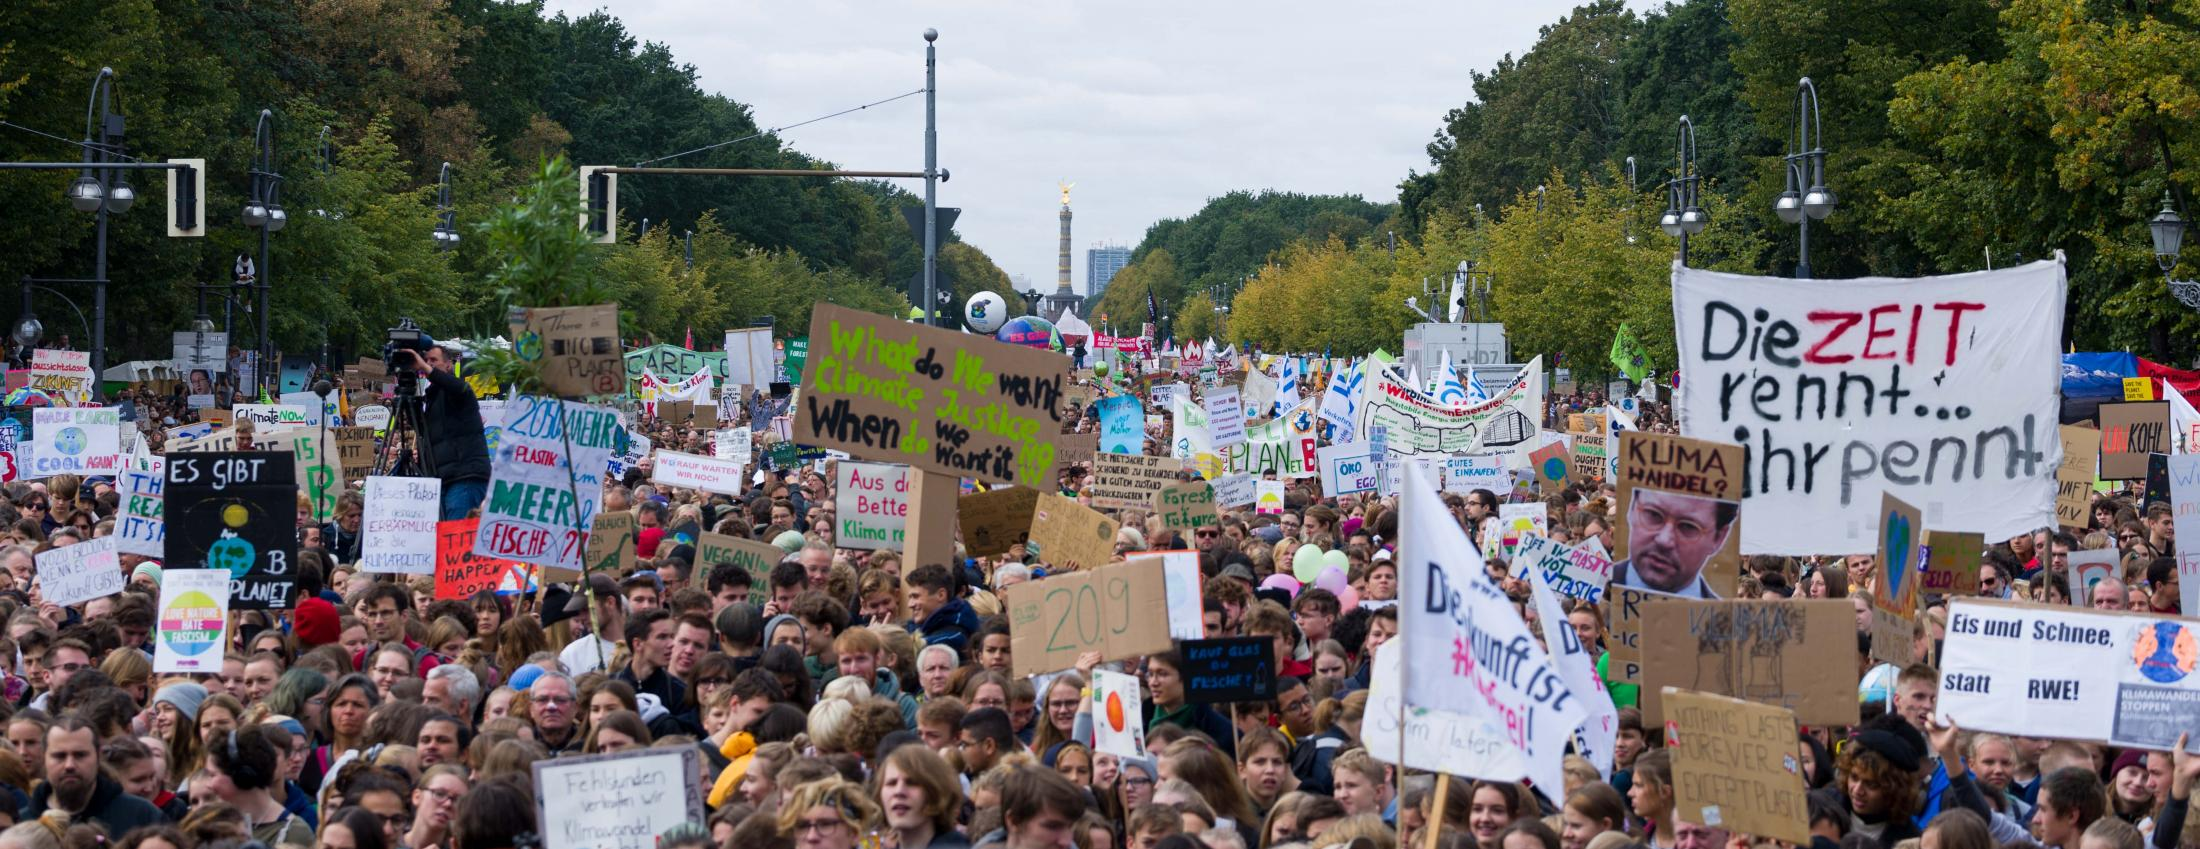 According to police, 100.000 attend the Global Climate Strike demonstration in Berlin. According to Fridays for Future, 270.000 attend in Berlin and 1,4 million nationwide. Berlin, September 20, 2019.